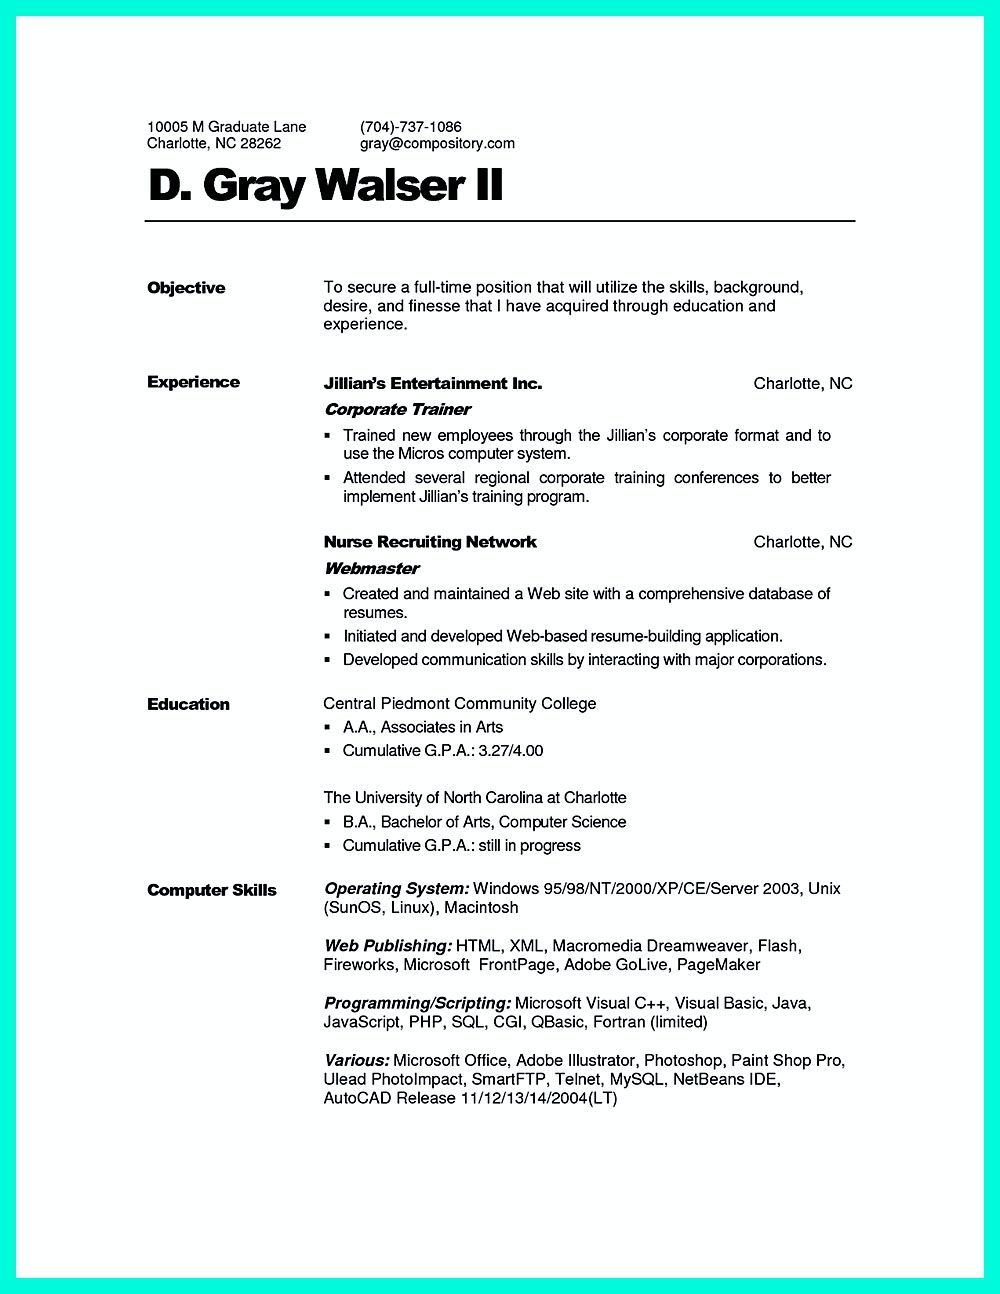 Corporate Trainer Resume Can Be In Chronological Or Reverse